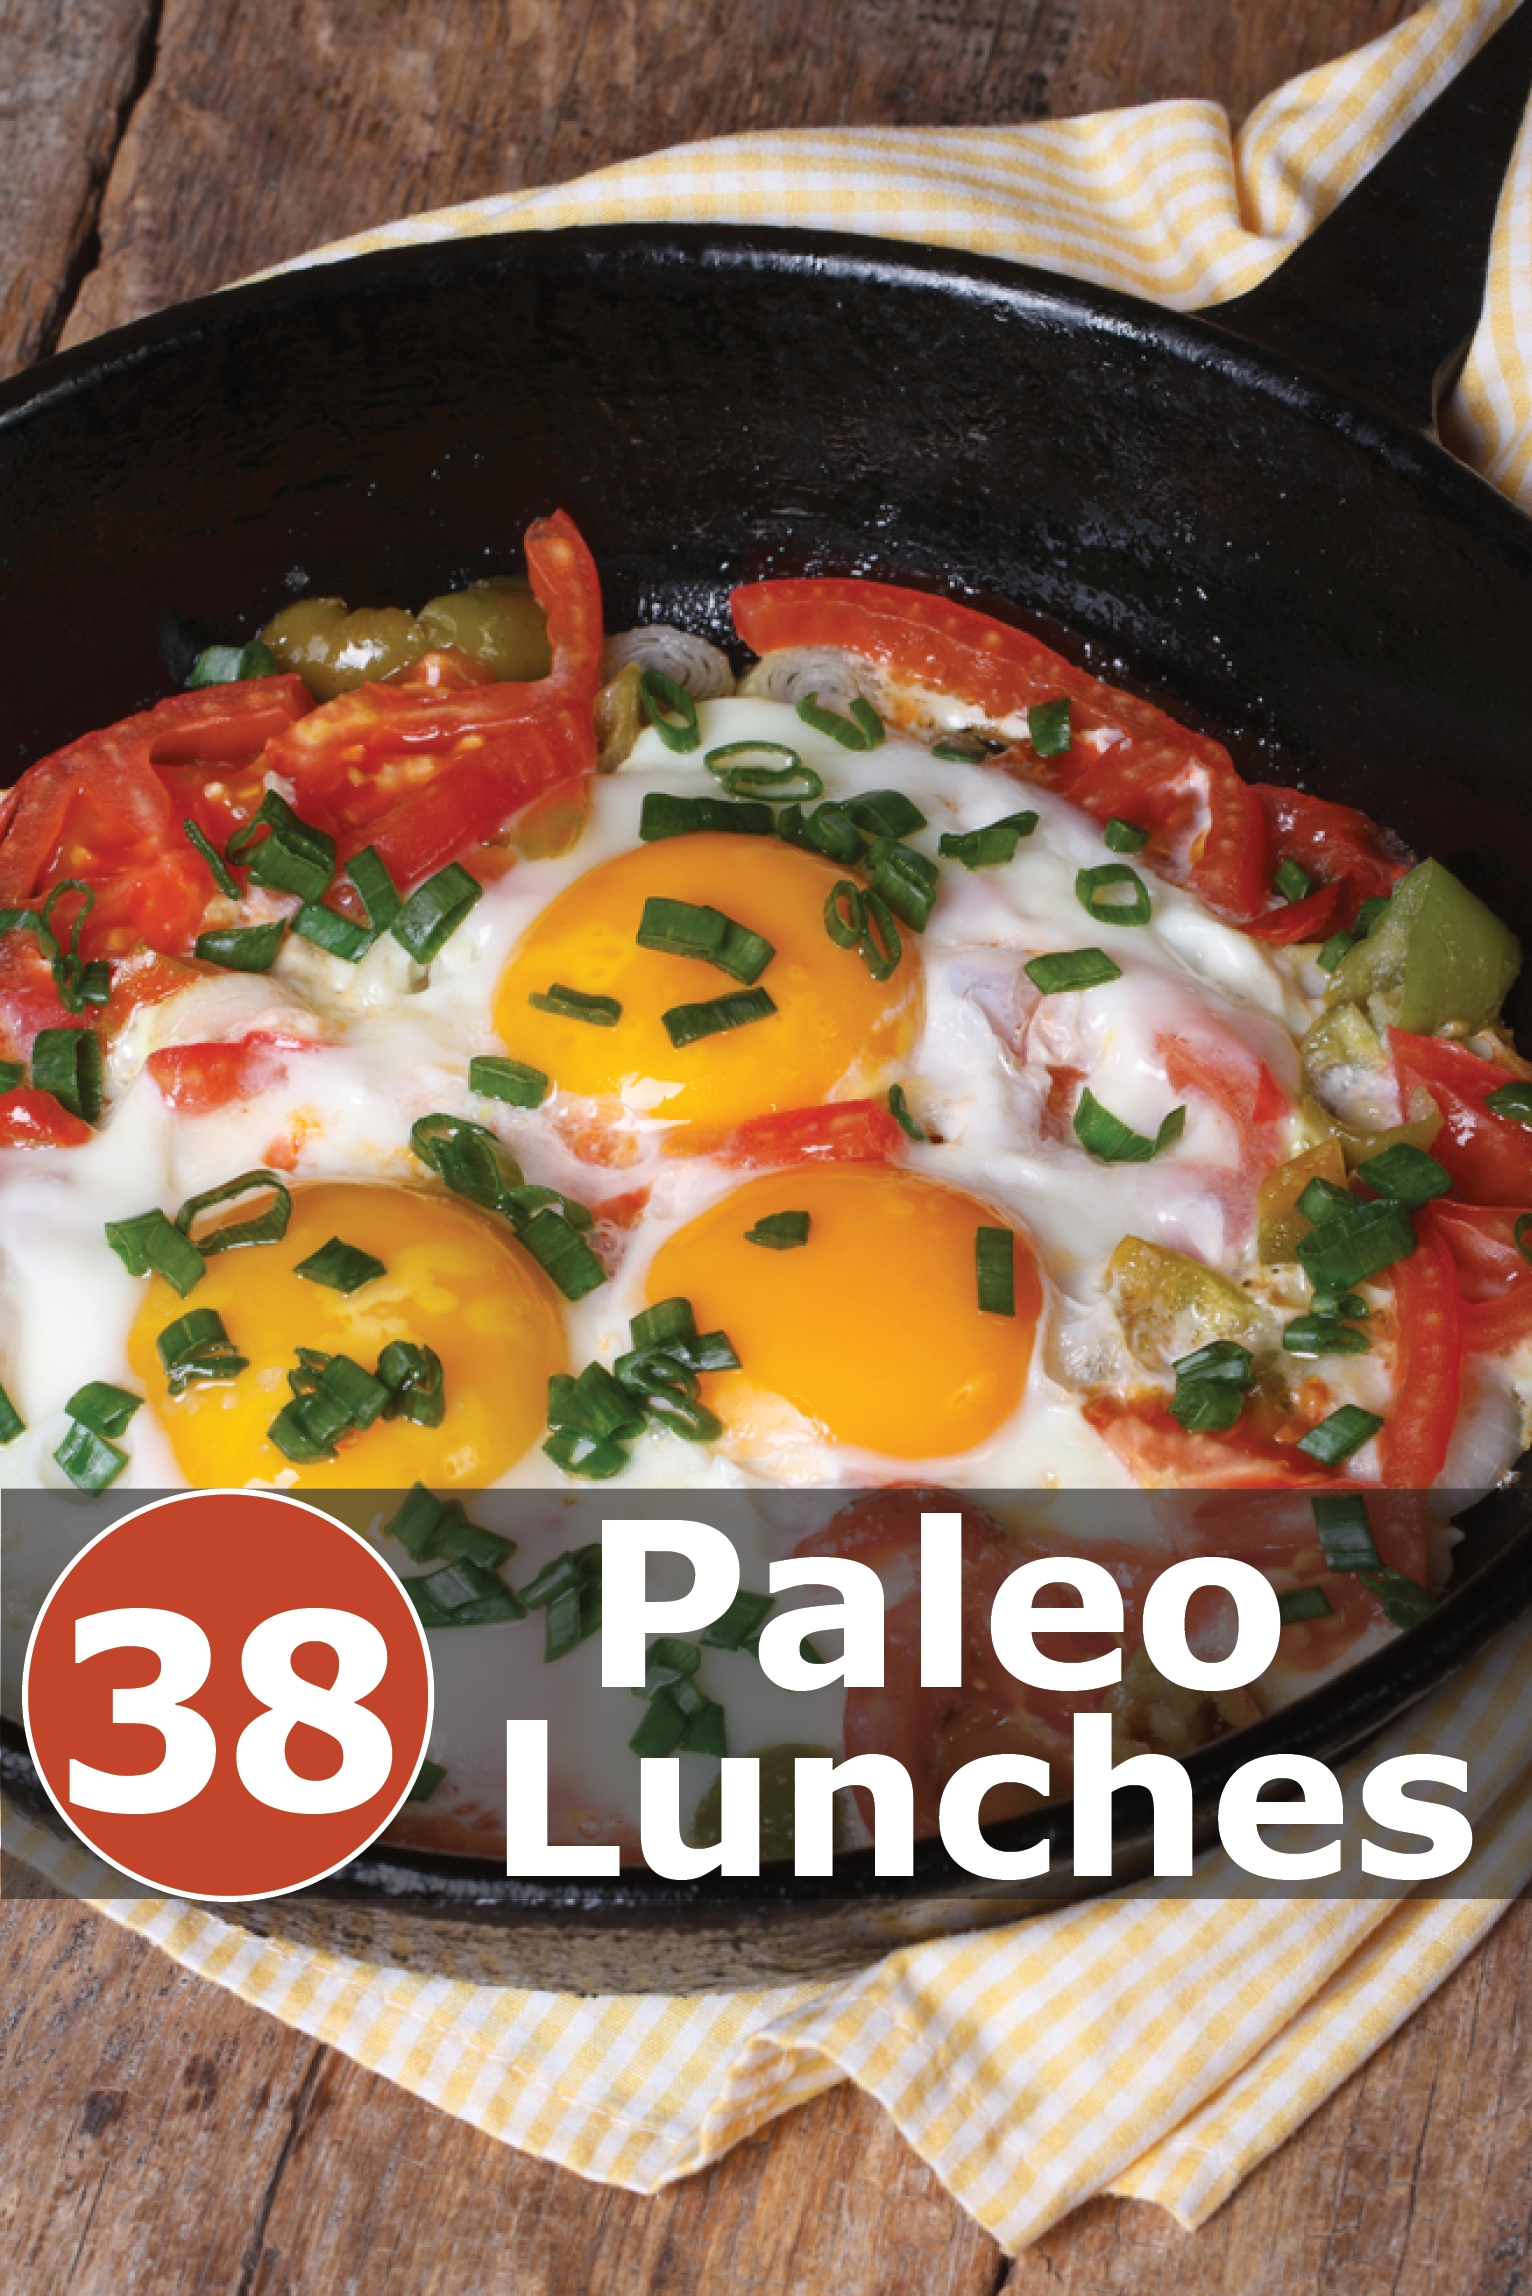 38 scrumptious paleo lunch recipes you should try today! | eat live life